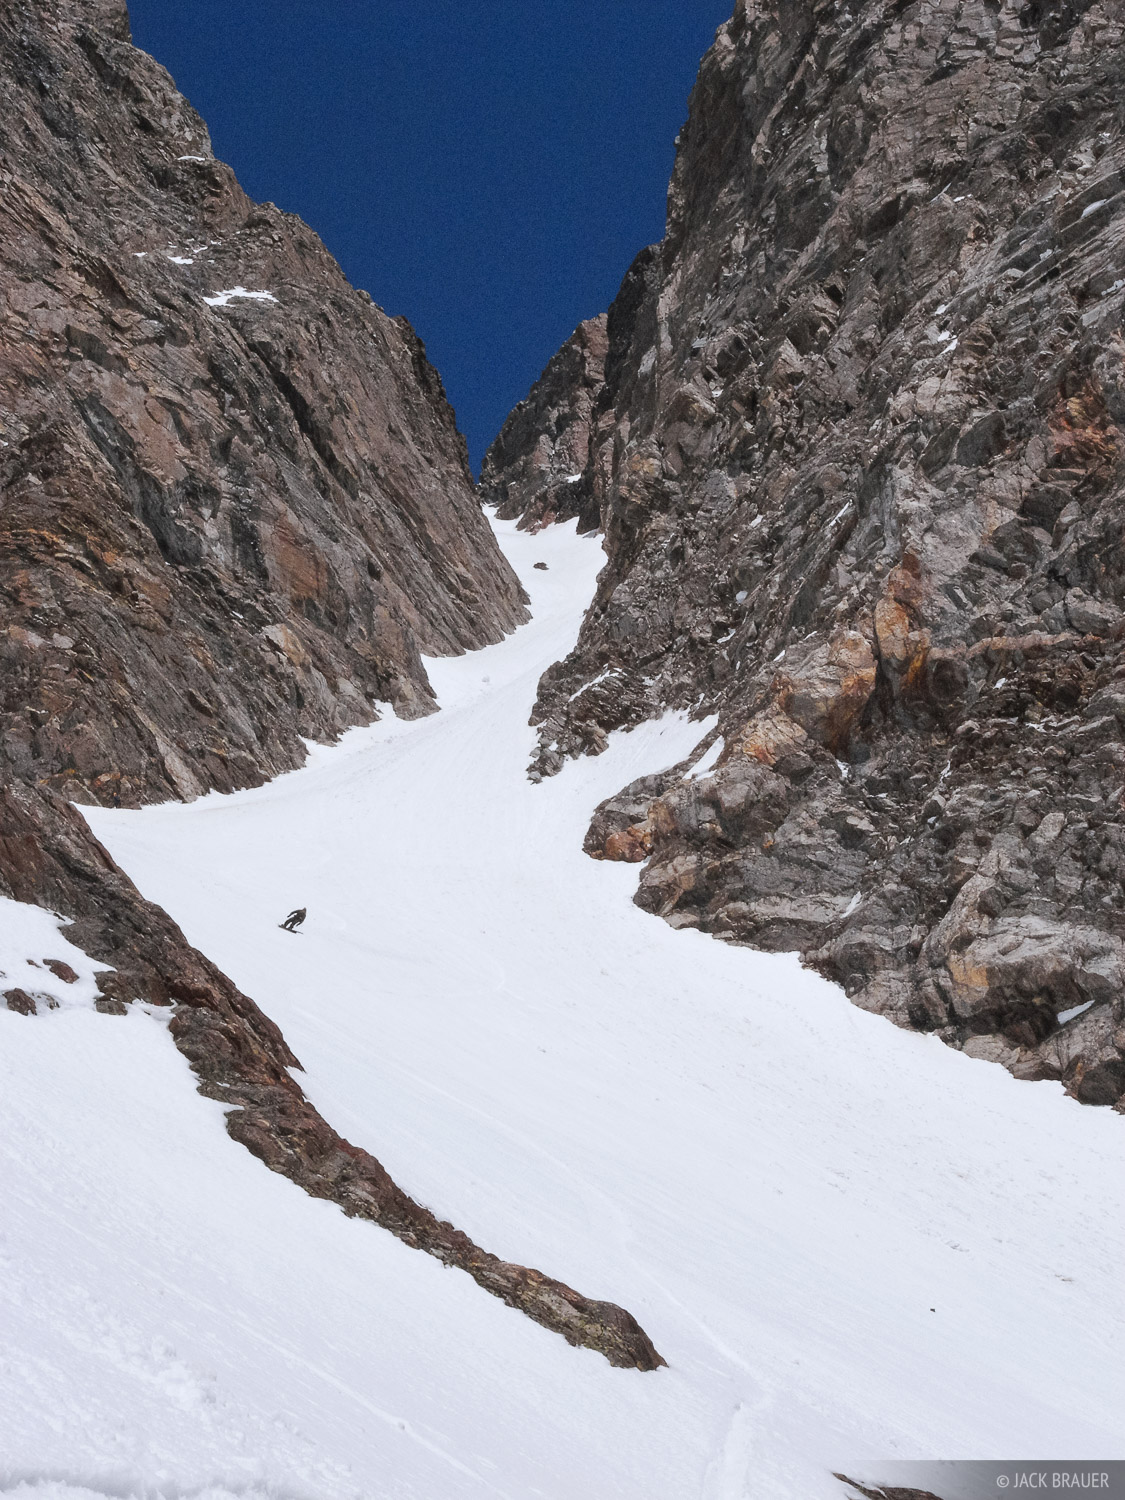 Southwest couloir, Mt. Moran, Tetons, Wyoming, snowboarding, Grand Teton National Park, photo